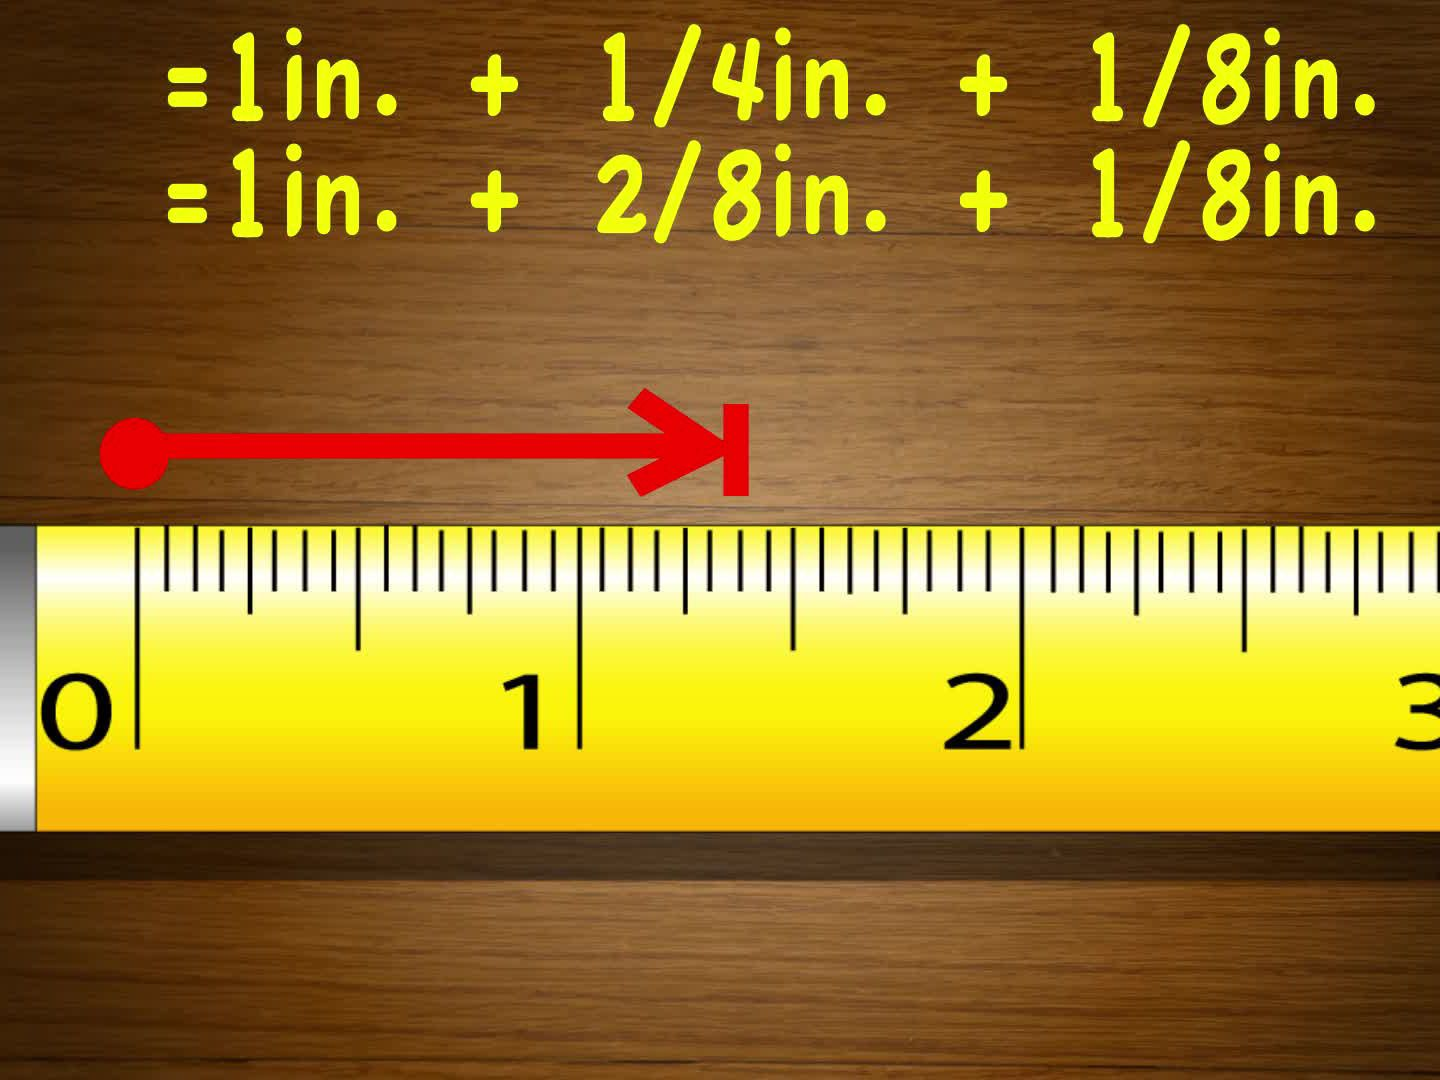 How To Read A Measuring Tape Tape Measure Woodworking Tips Math For Kids [ 1080 x 1440 Pixel ]